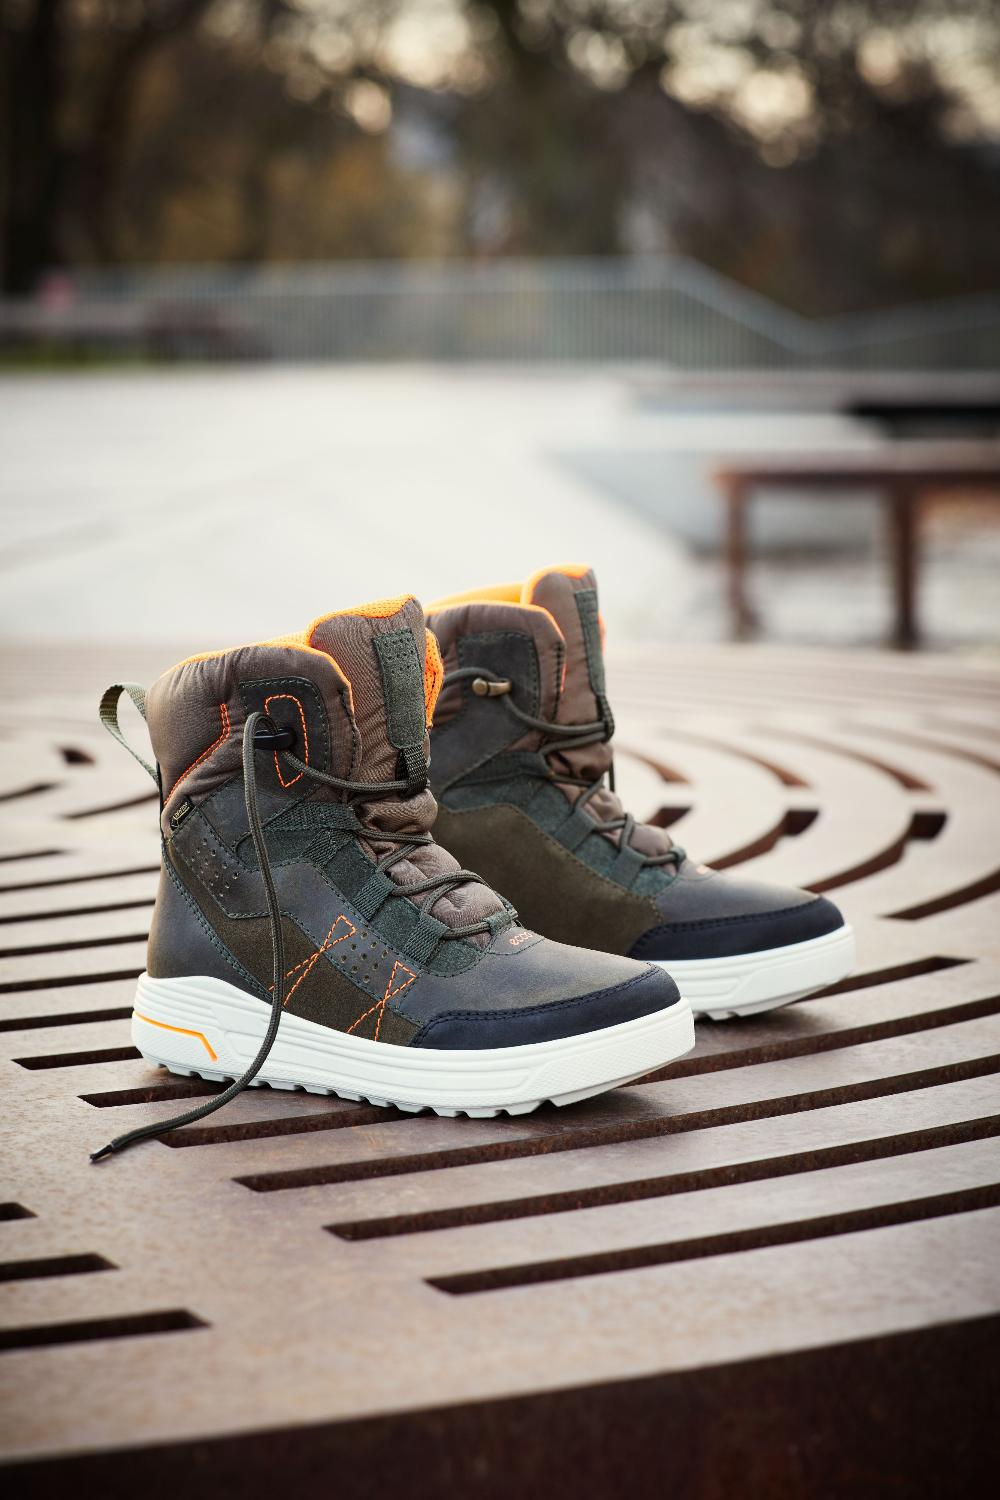 Gore Celebrates Forty Years in the Market for Innovative Clothing and Shoes